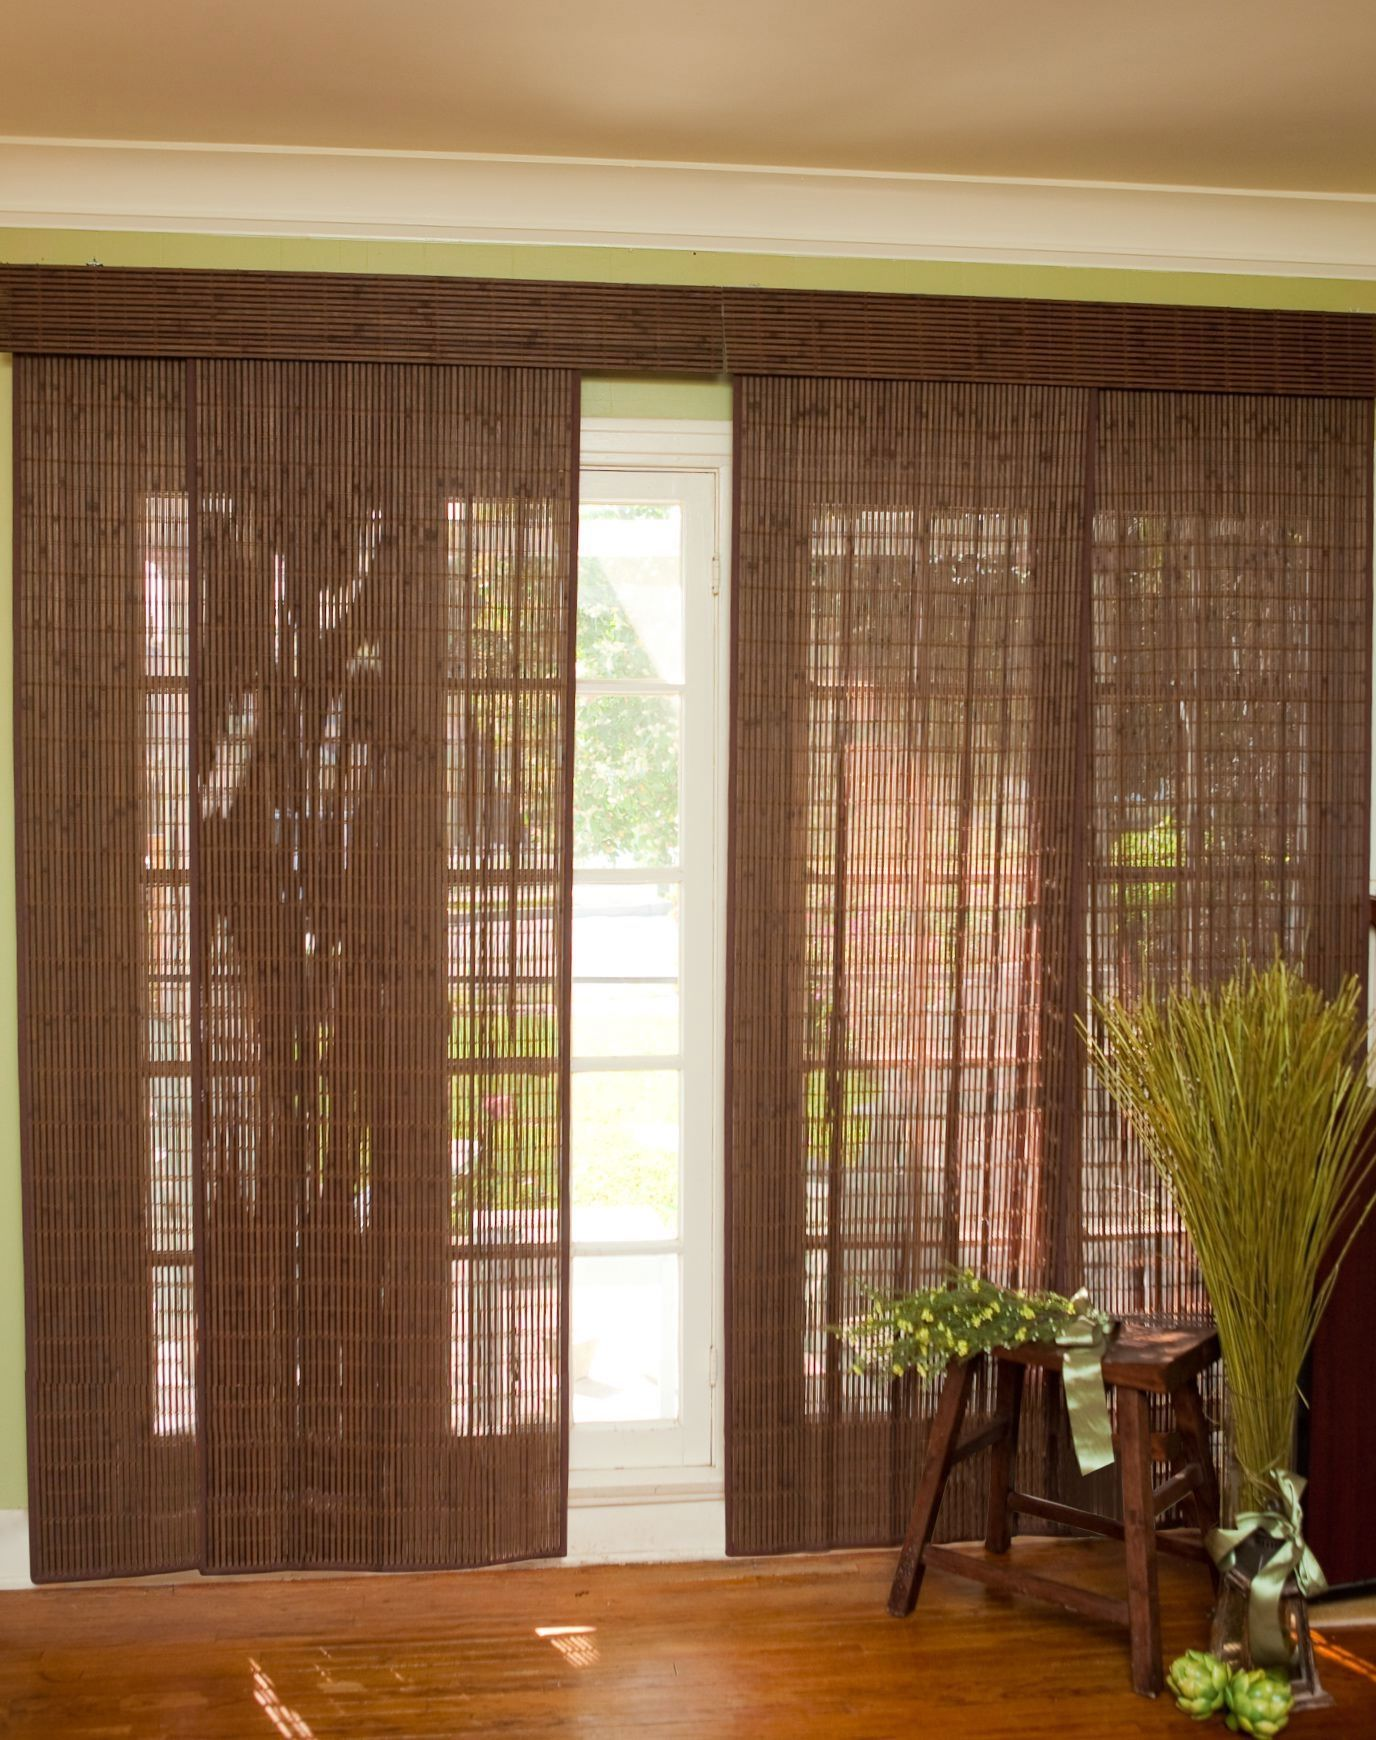 Bamboo Slider Panel Blinds For Patio Doors And Windows Window